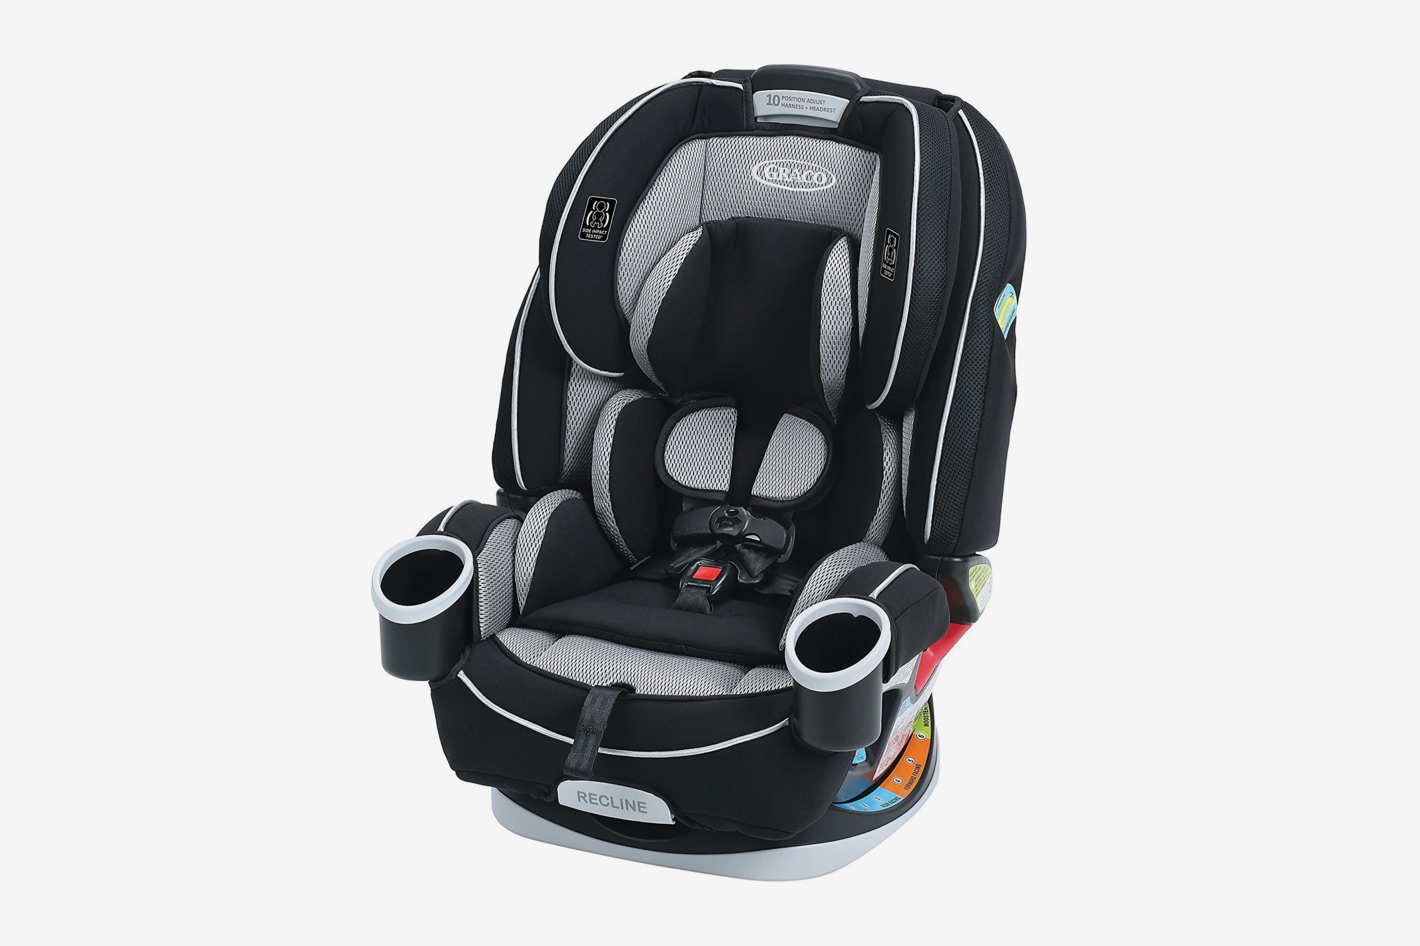 Graco 4Ever 4-in-1 Convertible Car Seat 11 Best and Safest Infant Seats 2018